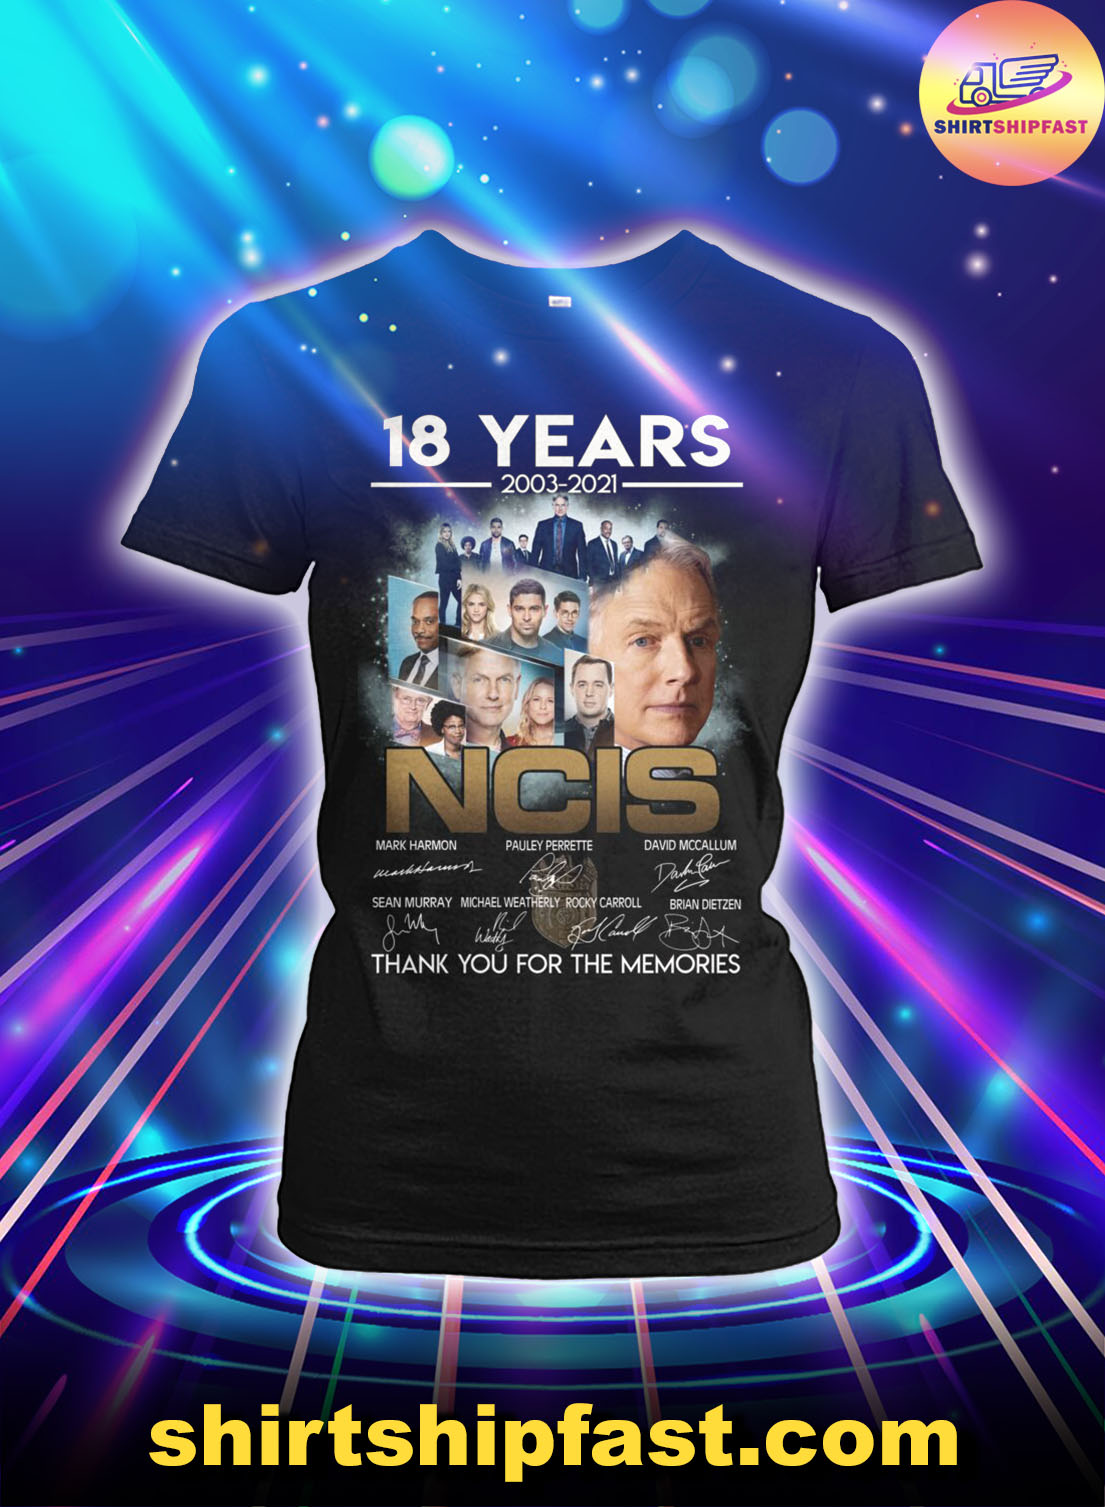 18 years 2003 2021 NCIS signatures thank you for the memories lady shirt